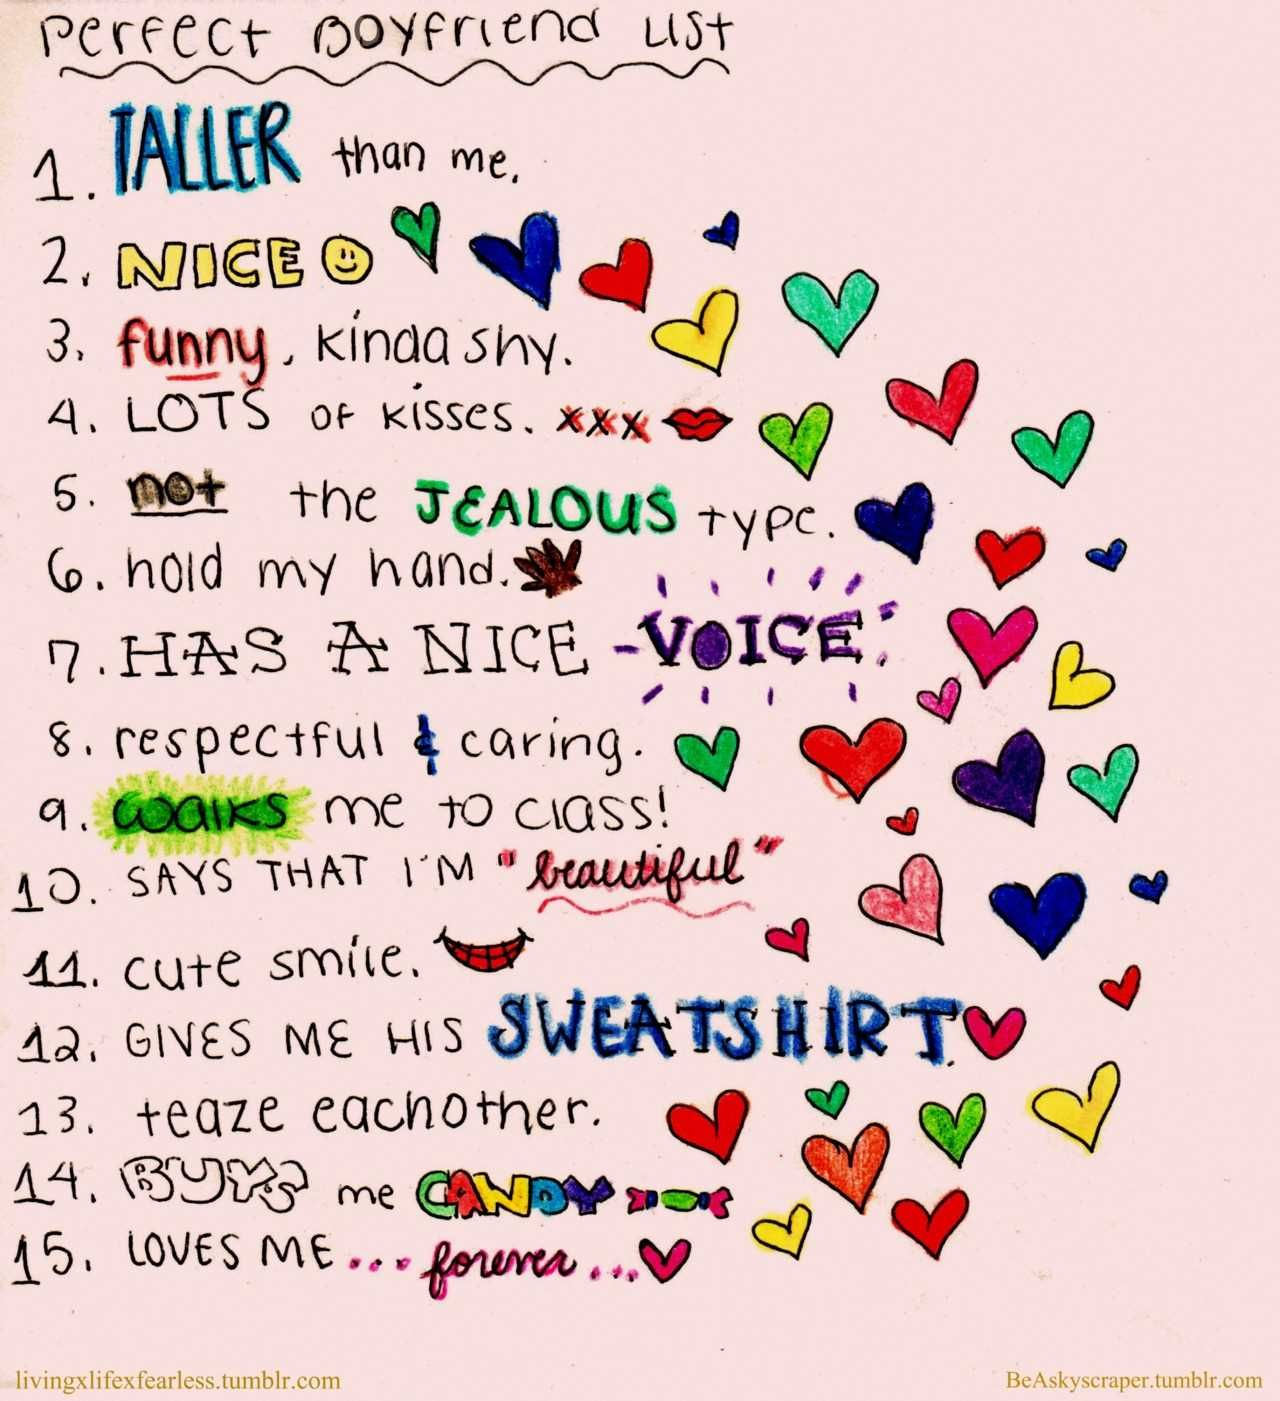 Life Love Quotes Perfect Boyfriend List Taller Than | ♥ PIC